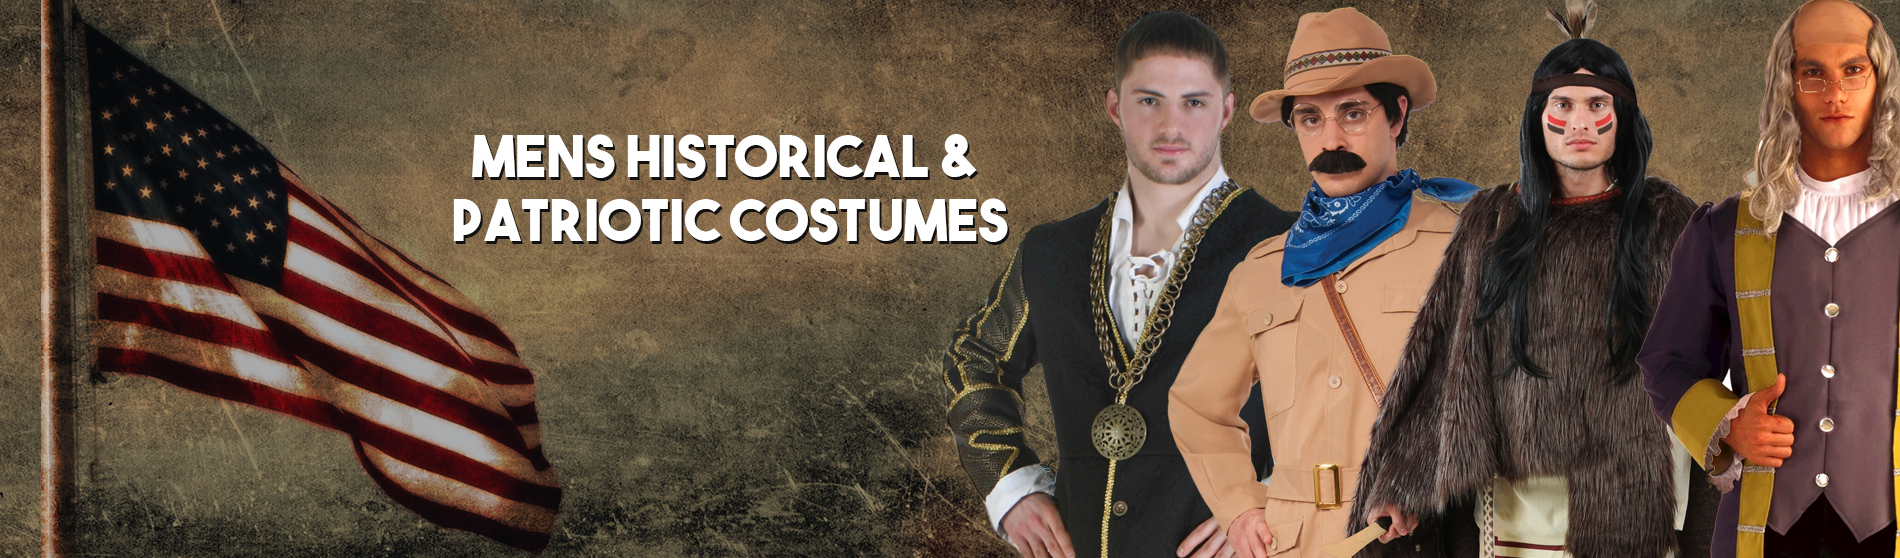 Mens Historical and Patriotic Costumes